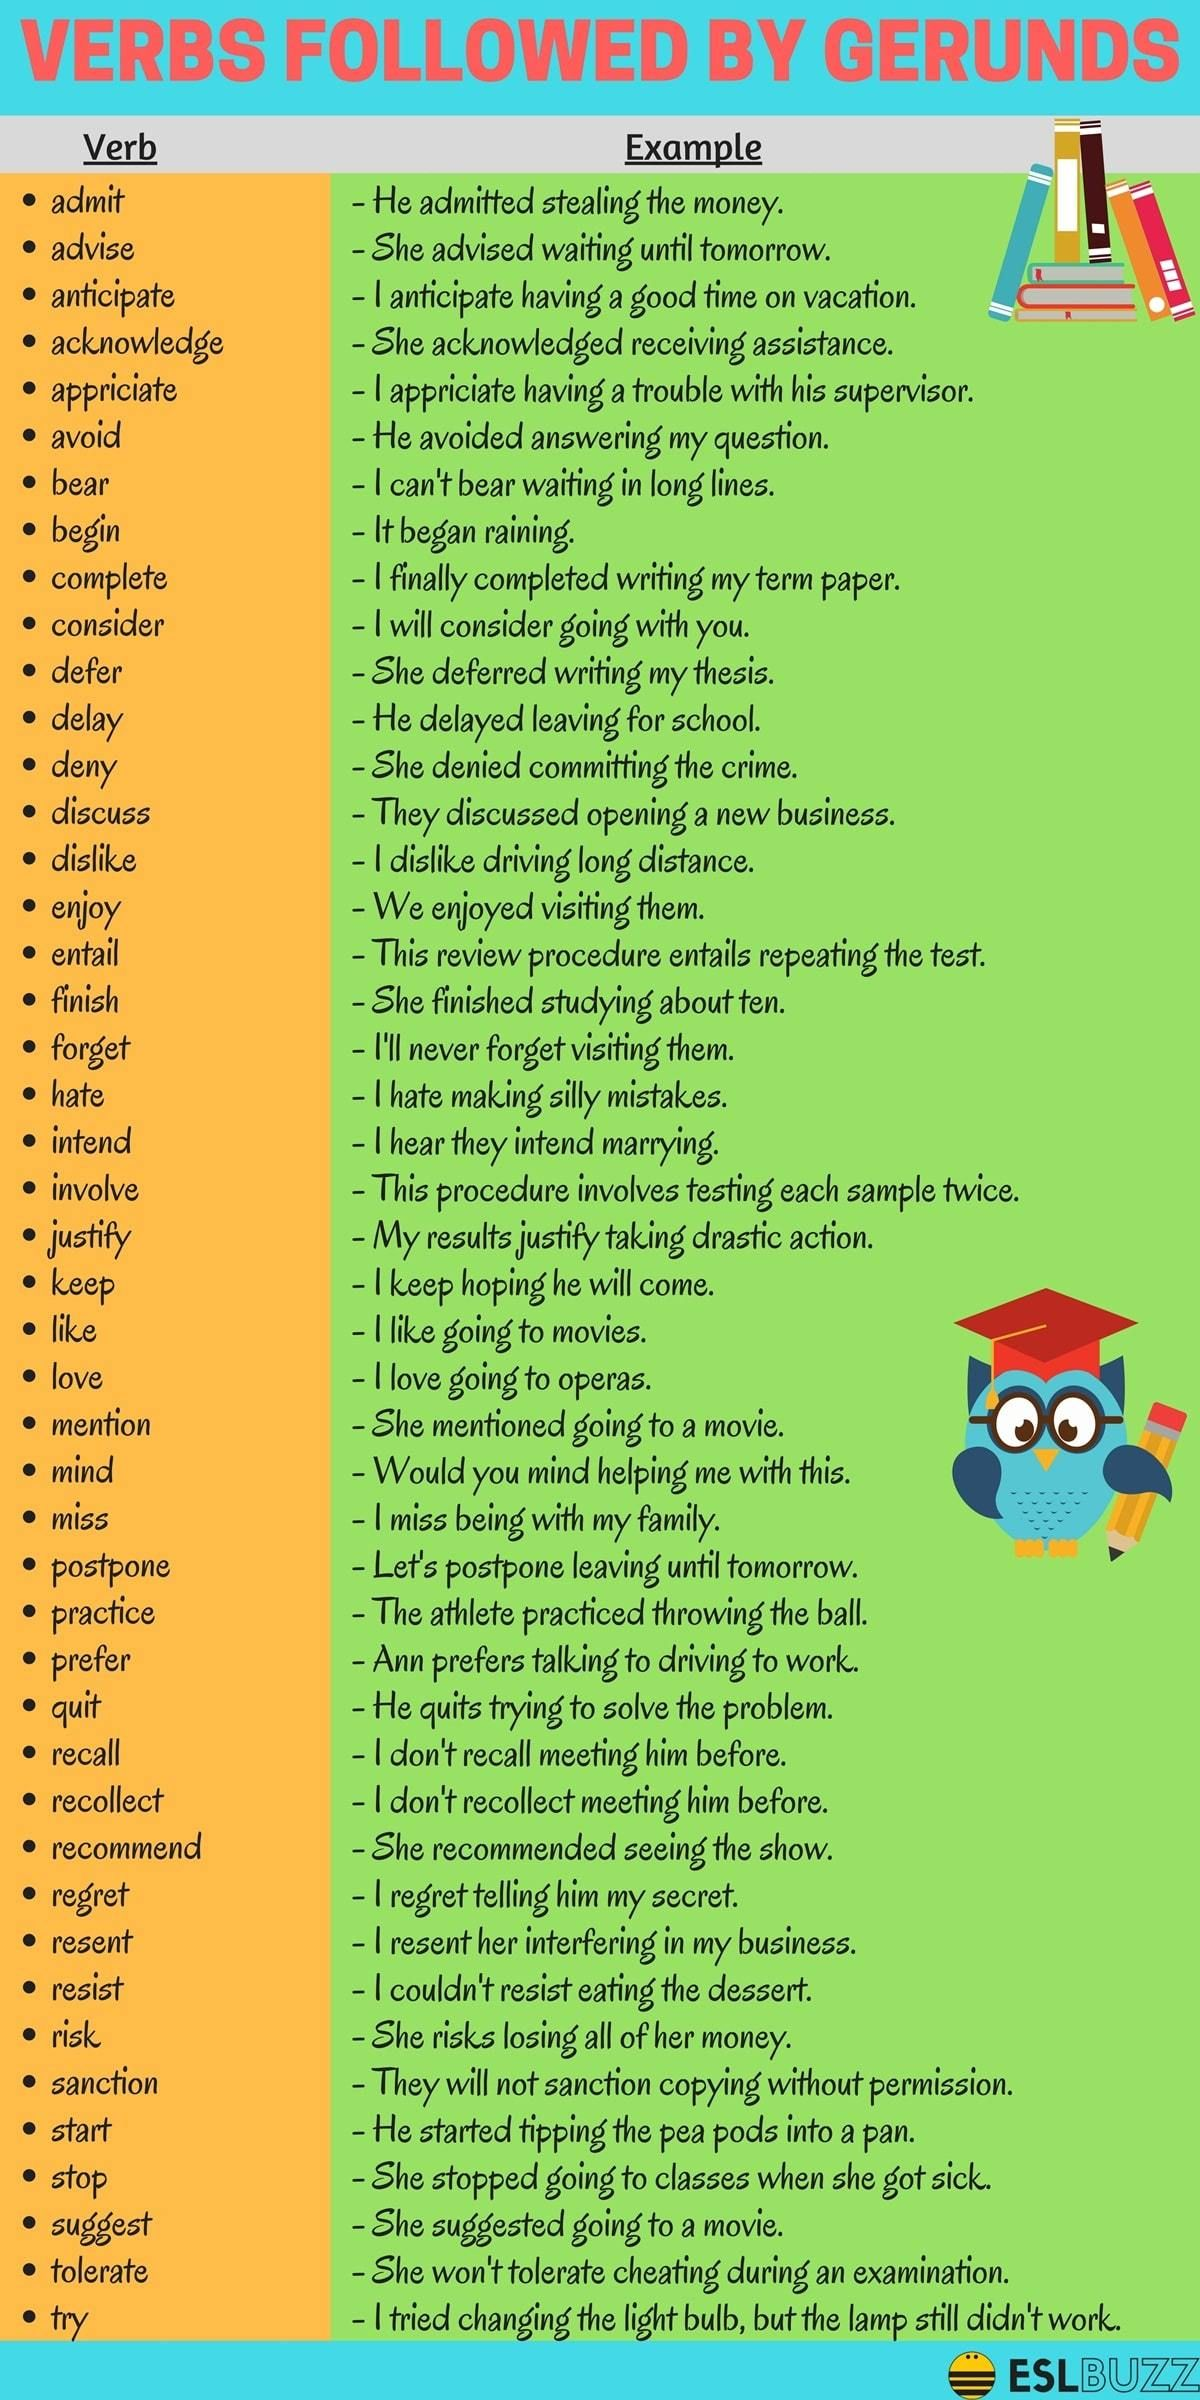 Verbs Followed By Gerunds In English